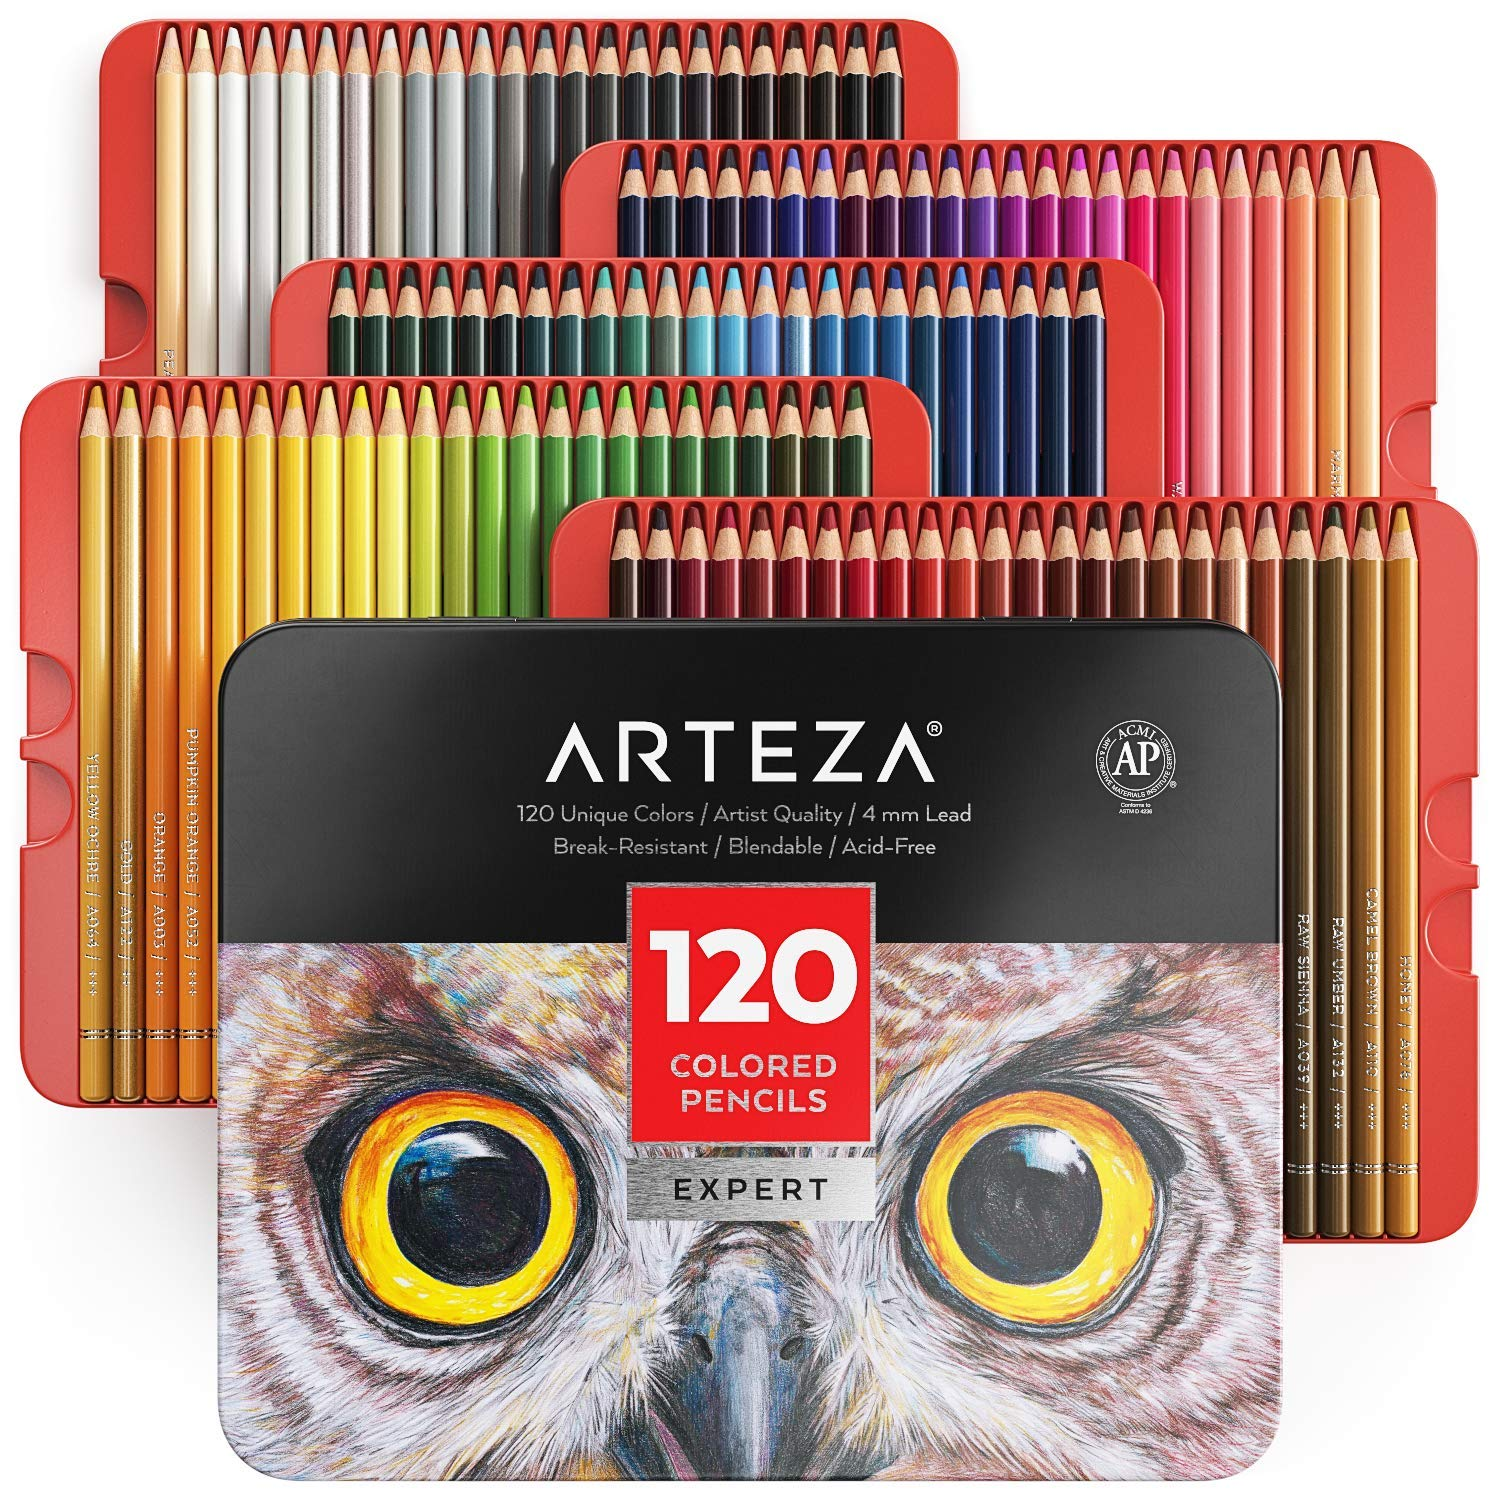 Arteza Professional Colored Pencils, Set of 120 Colors, Soft Wax-Based Cores, Art Supplies for Drawing Art, Sketching, Shading & Coloring, Vibrant Artist Pencils for Beginners & Pro Artists in Tin Box